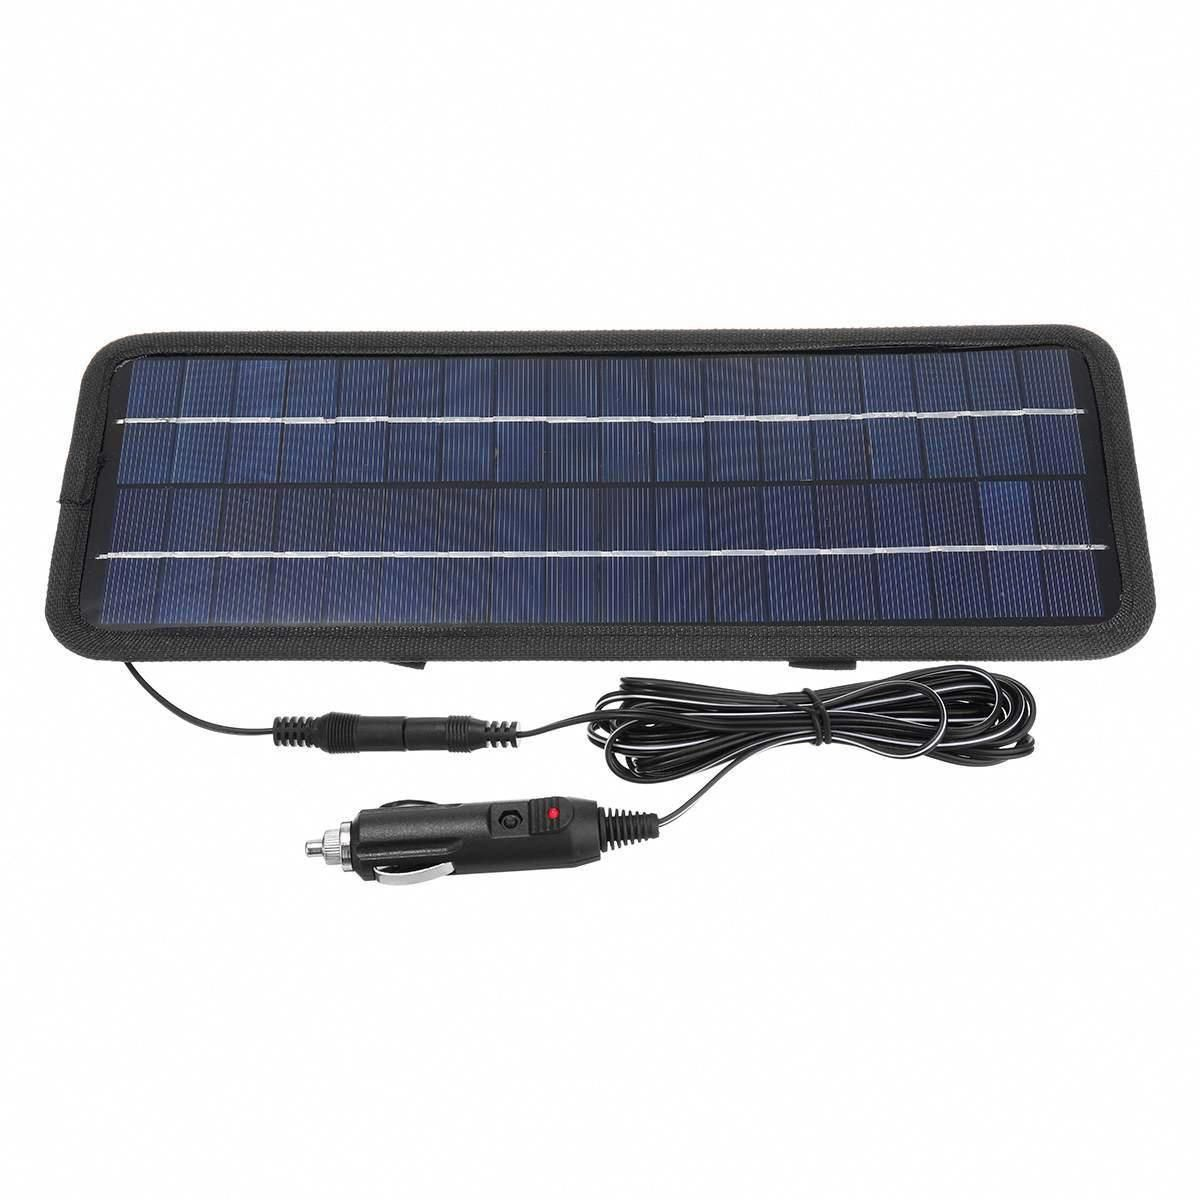 Sold 1042617588 Items 4 5w 12v Portable Boat Car Solar Panel Single Crystal Silicon Trickle Battery Charger U Car Battery Hacks Car Battery Jump A Car Battery